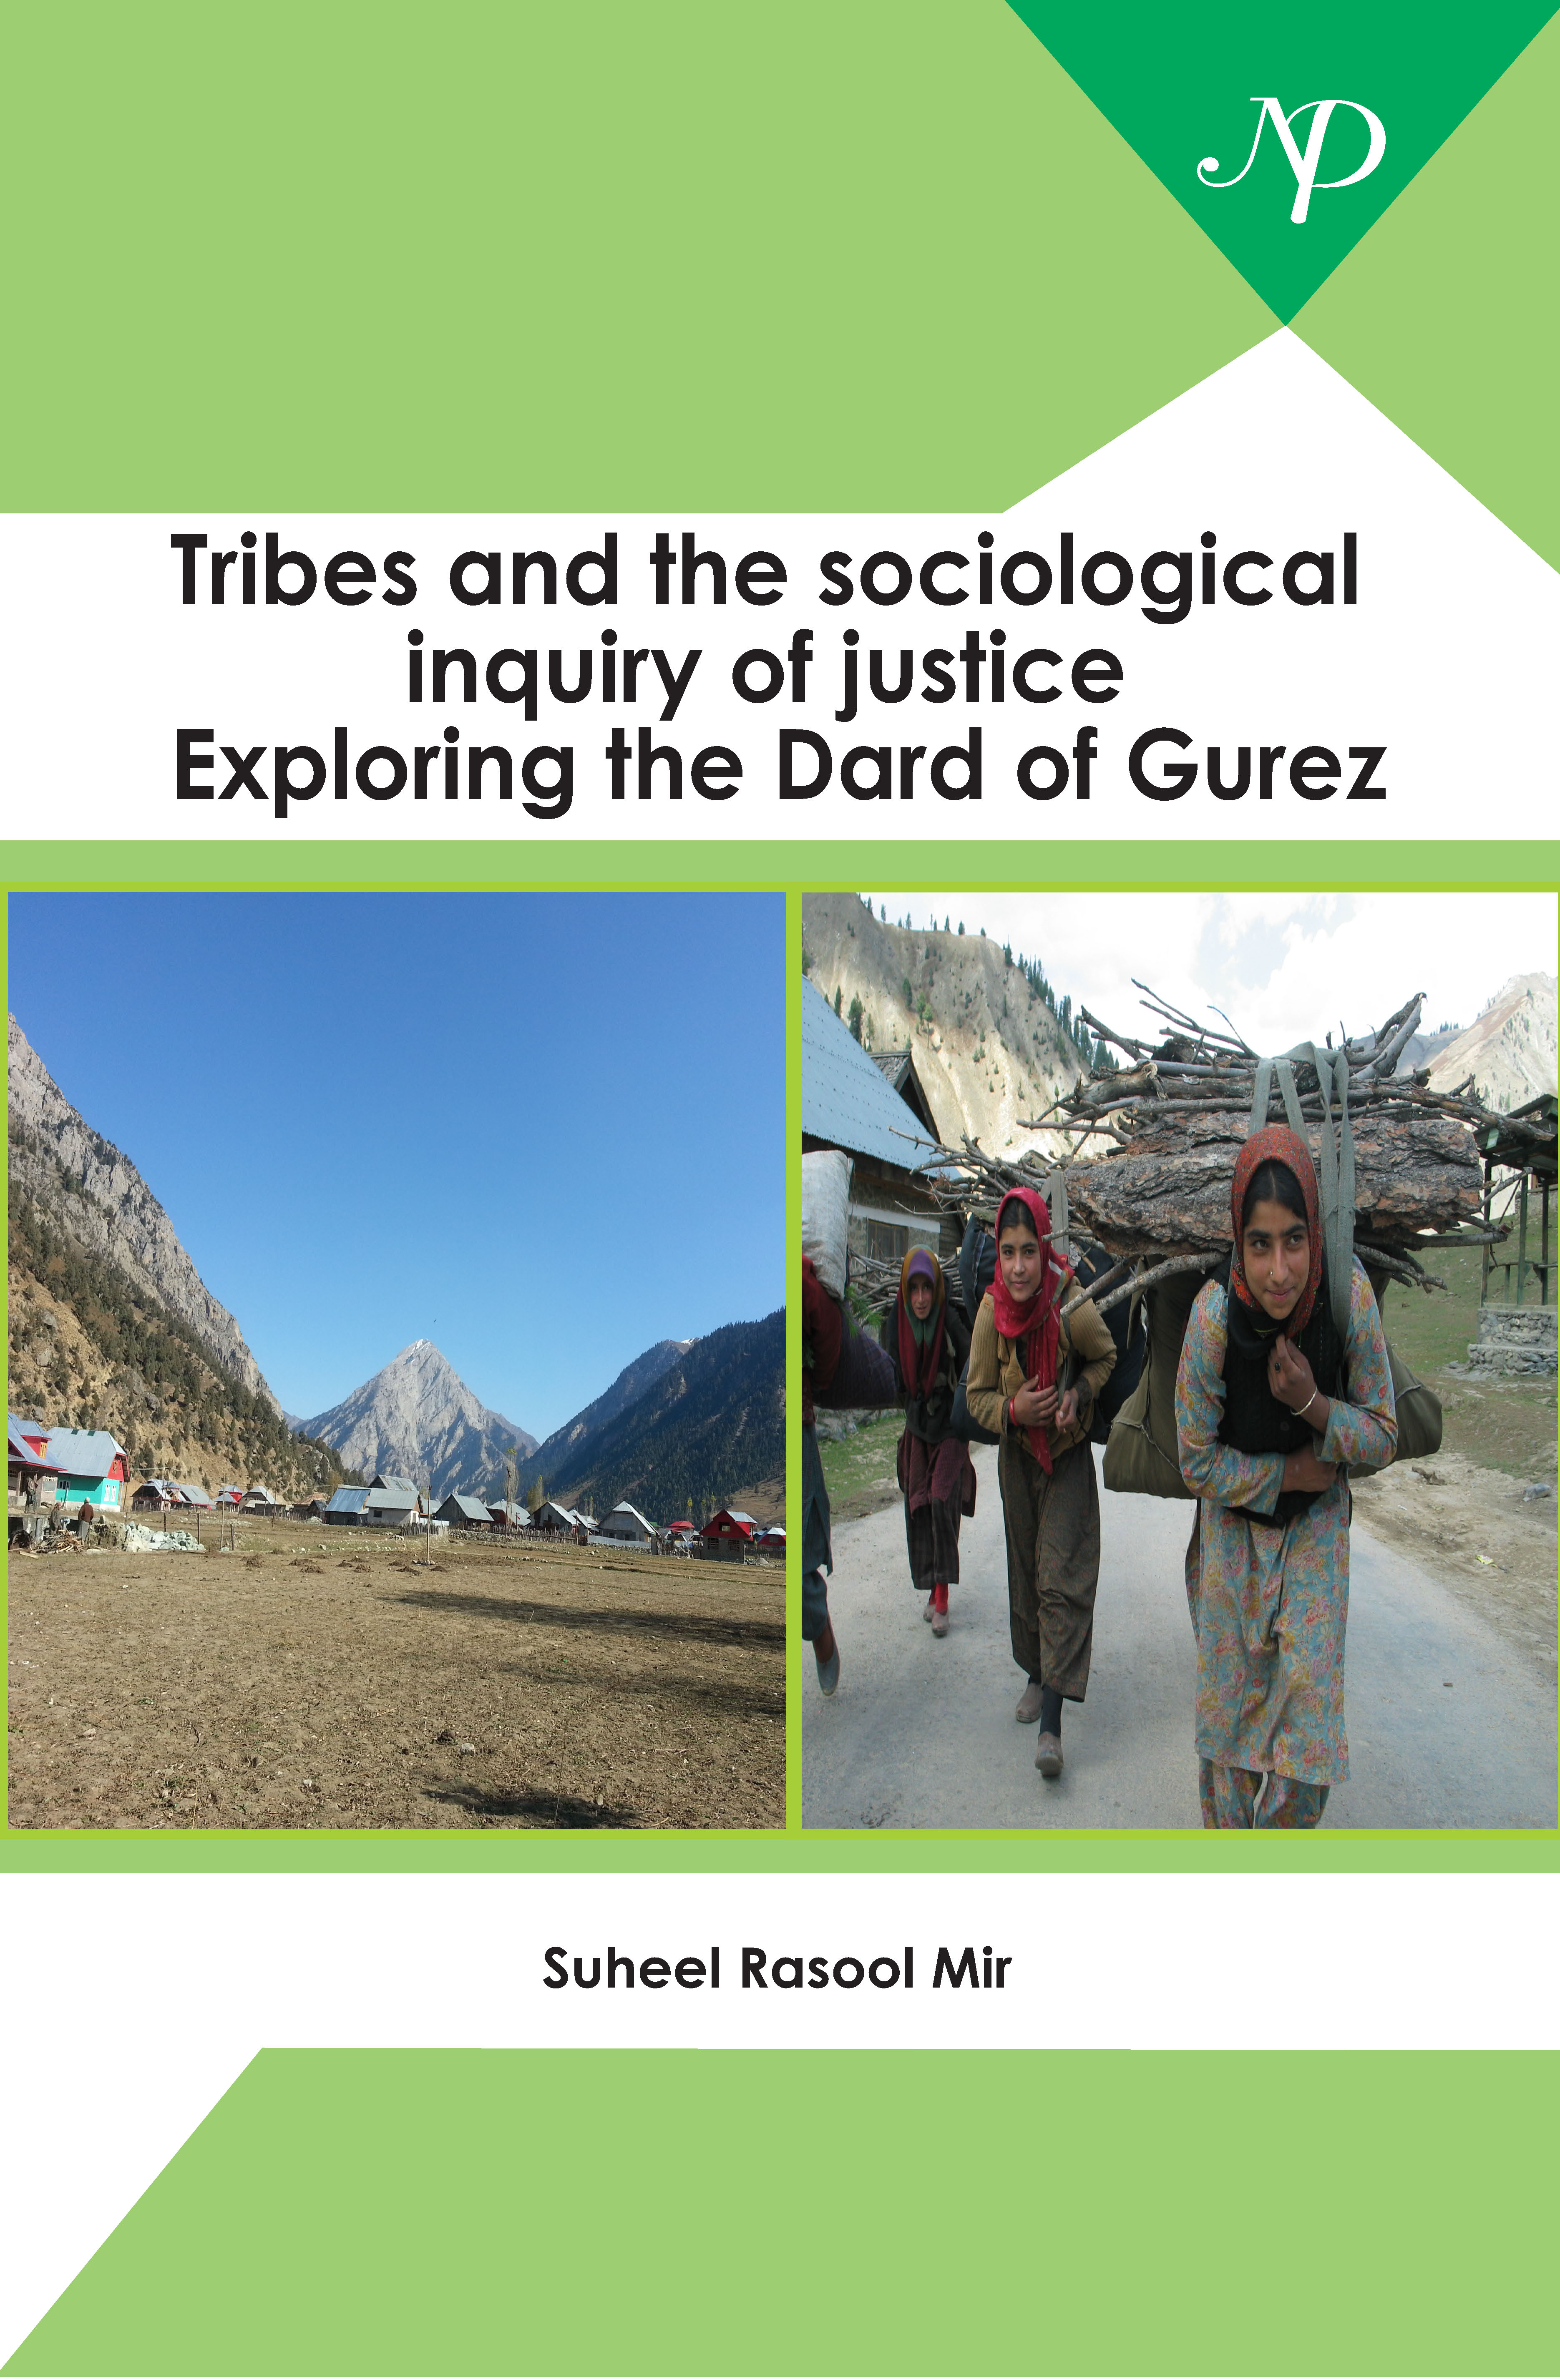 Tribes and the sociological inquiry of justice.jpg